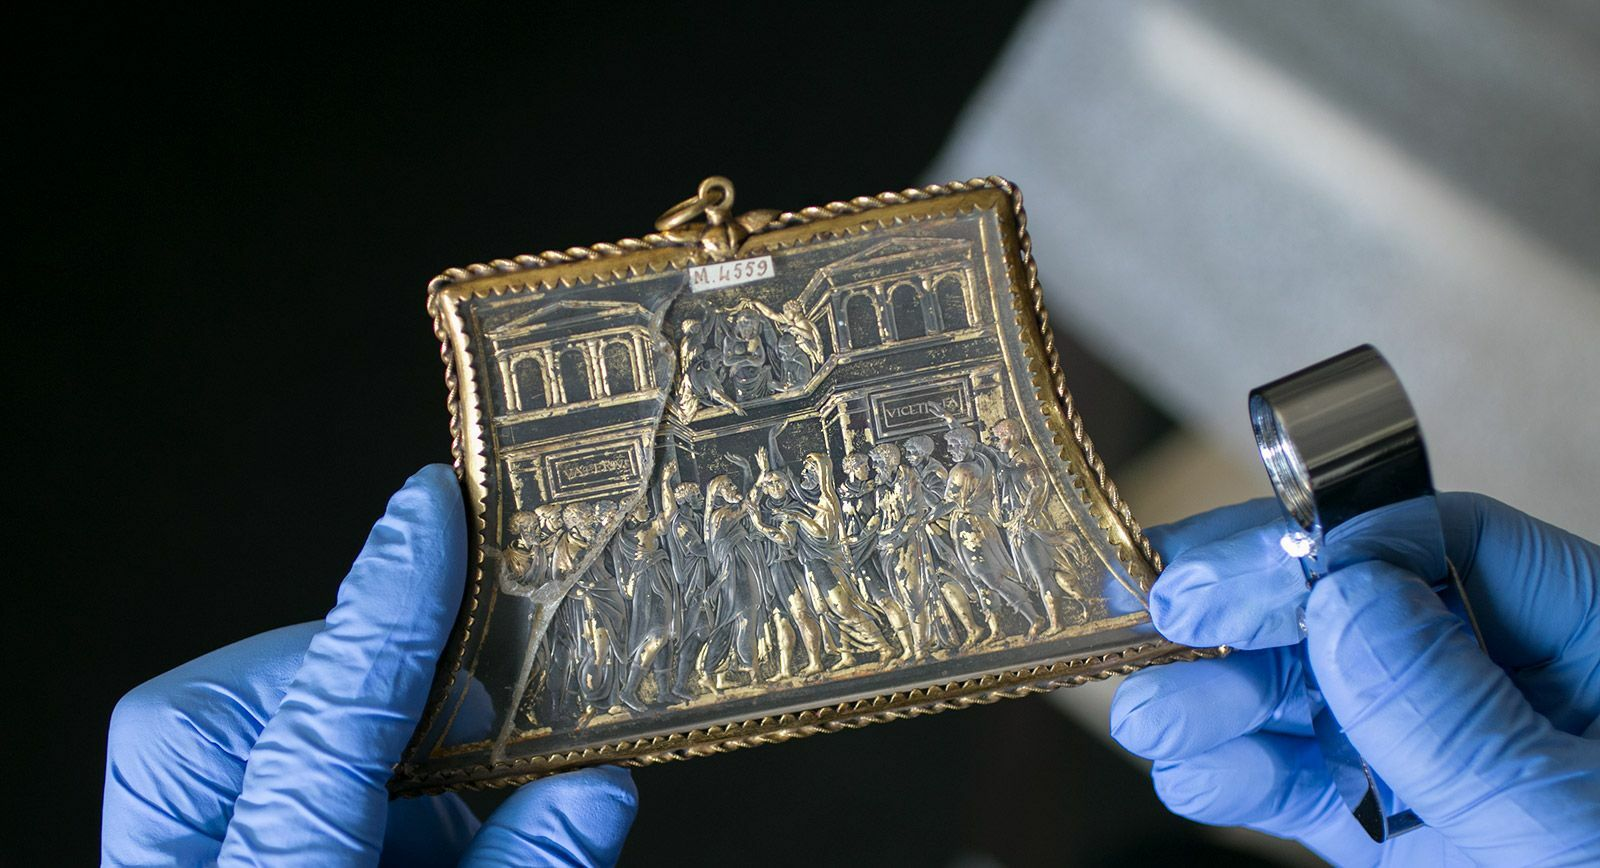 Intaglio from the collection of the National Library of France